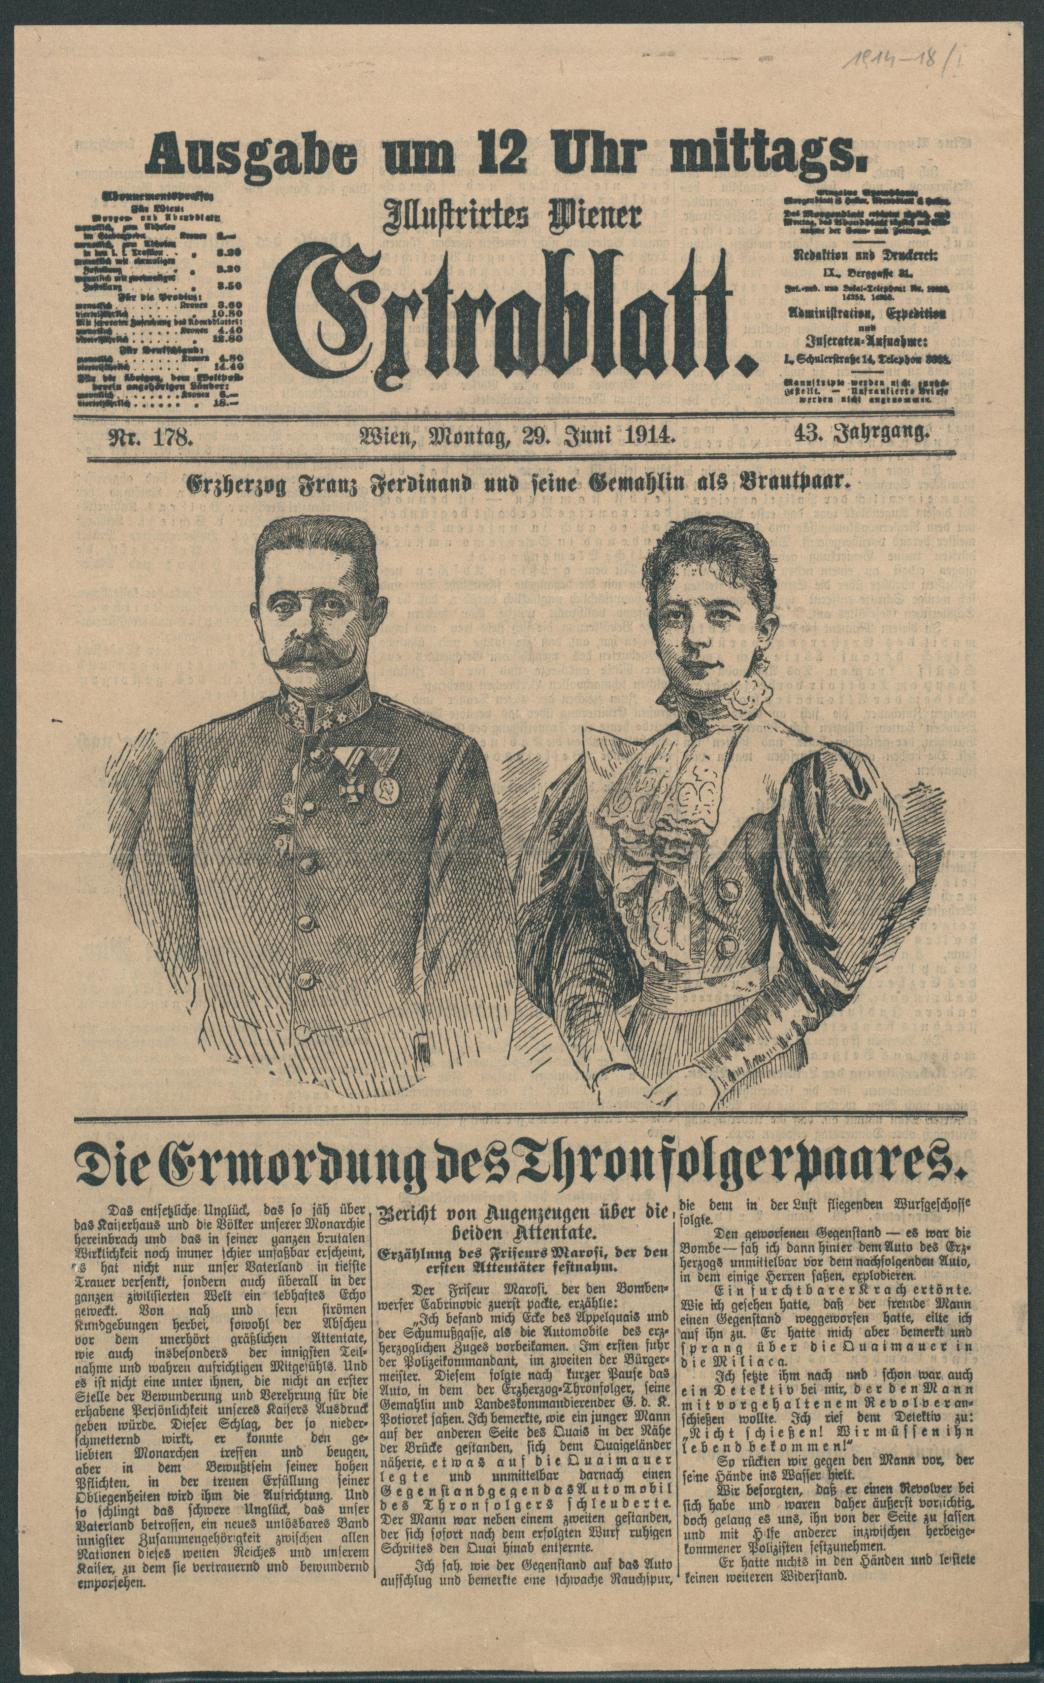 Extrablatt (extra edition) 29 June 1914: (Collection of the National Library of Austria)